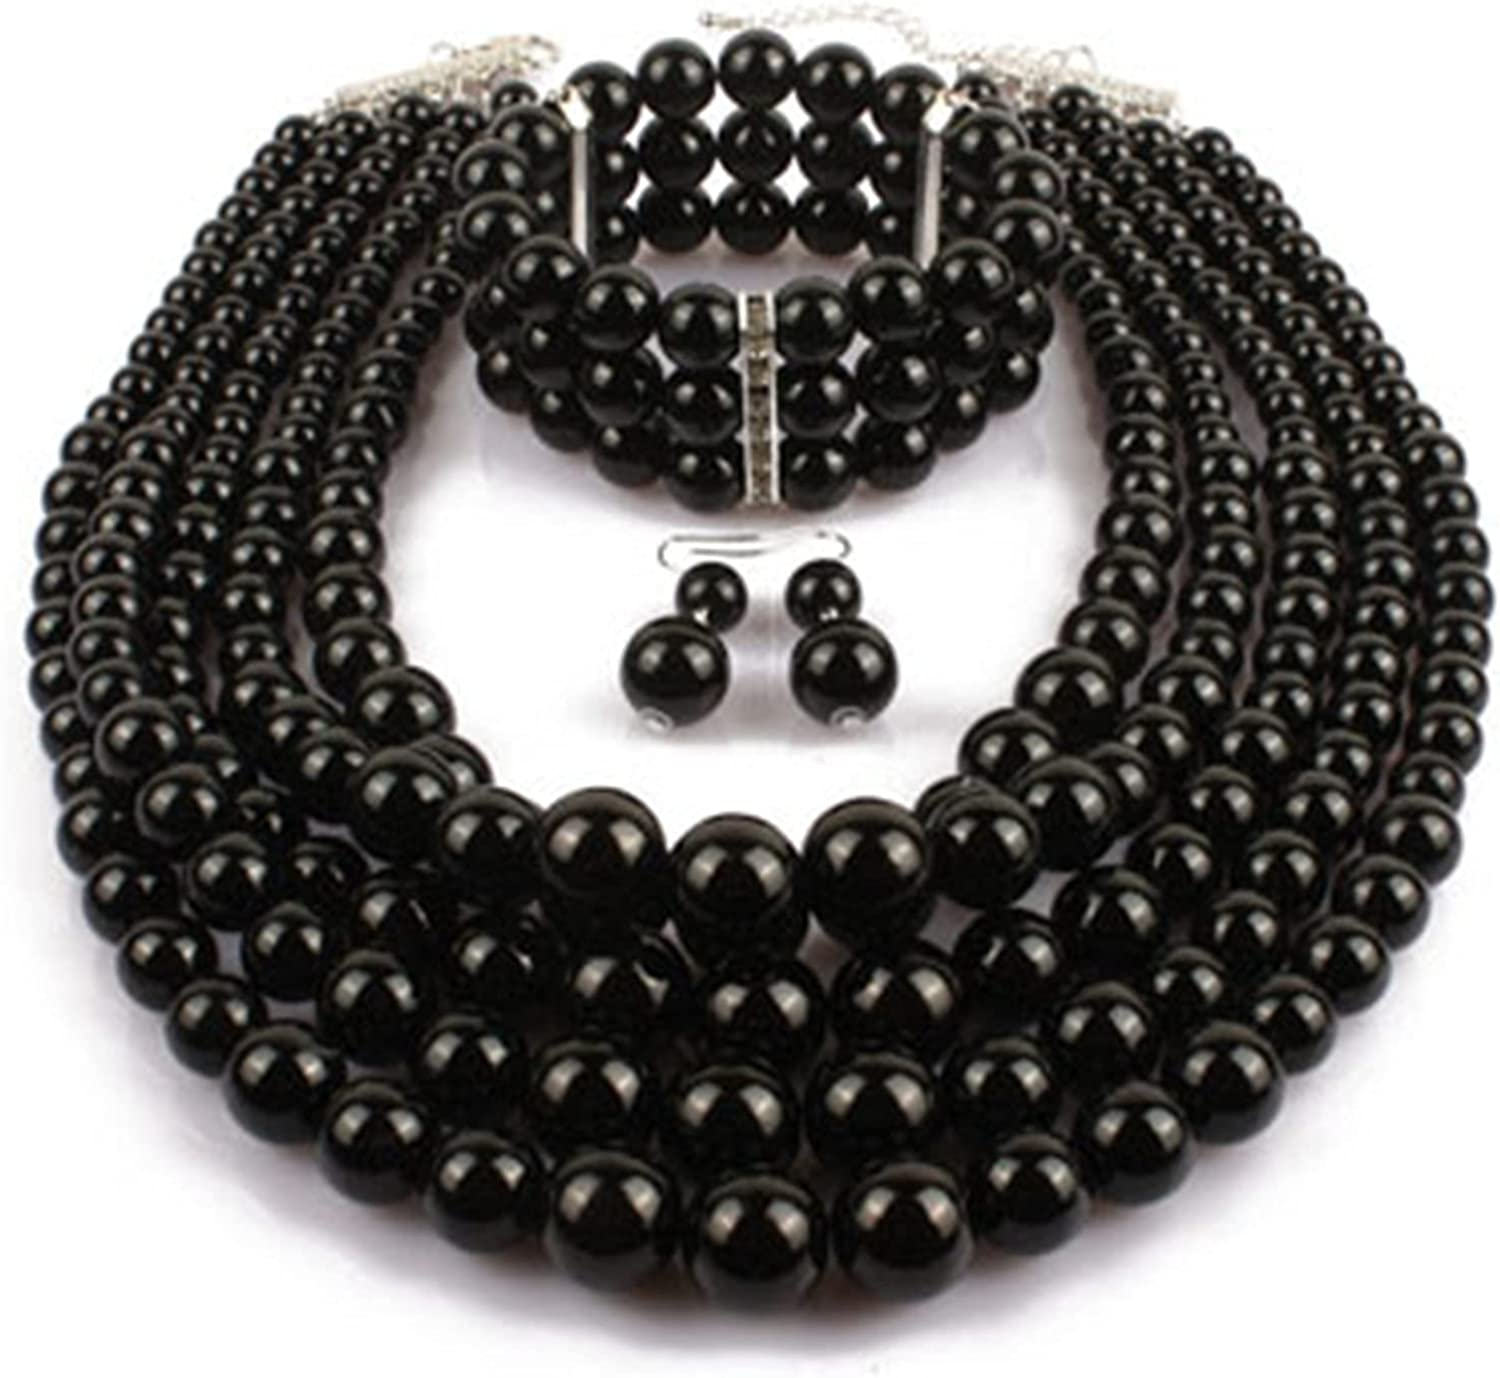 Exaggerated Layered Imitation Pearl Beads Choker Necklace Bracelet Drop Dangle Earring Multilayer Stacking Statement Strand Polished Ball Costume Jewelry Sets for Women Girl